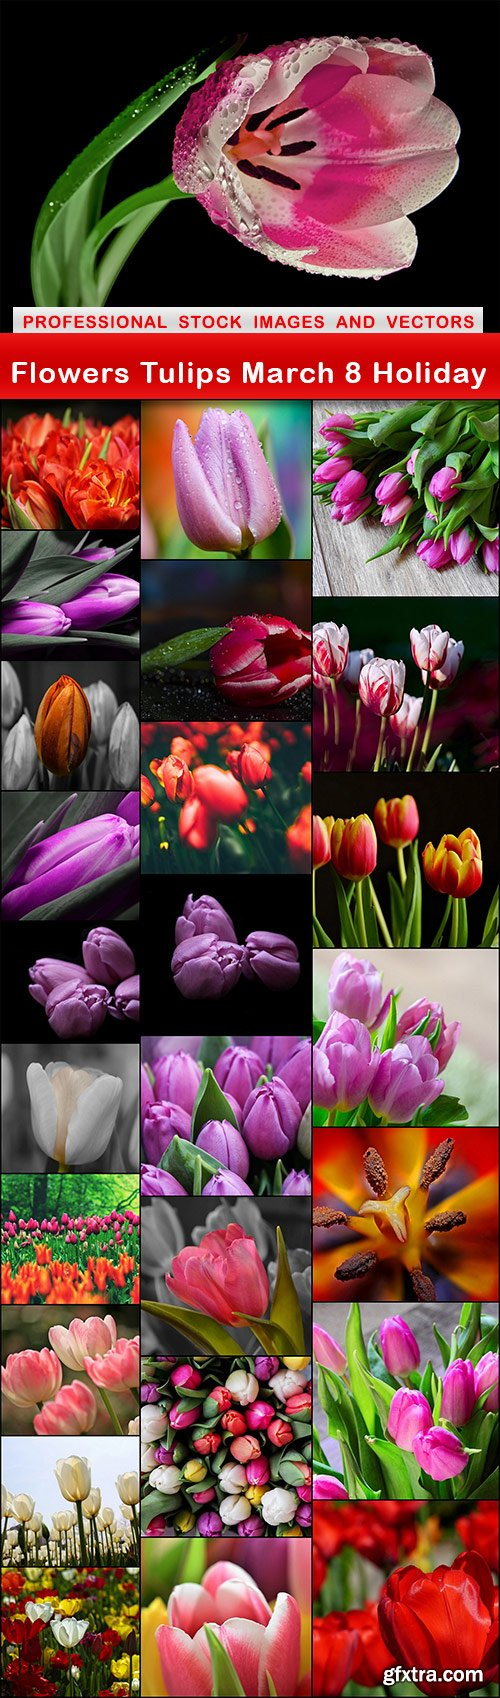 Flowers Tulips March 8 Holiday - 26 UHQ JPEG